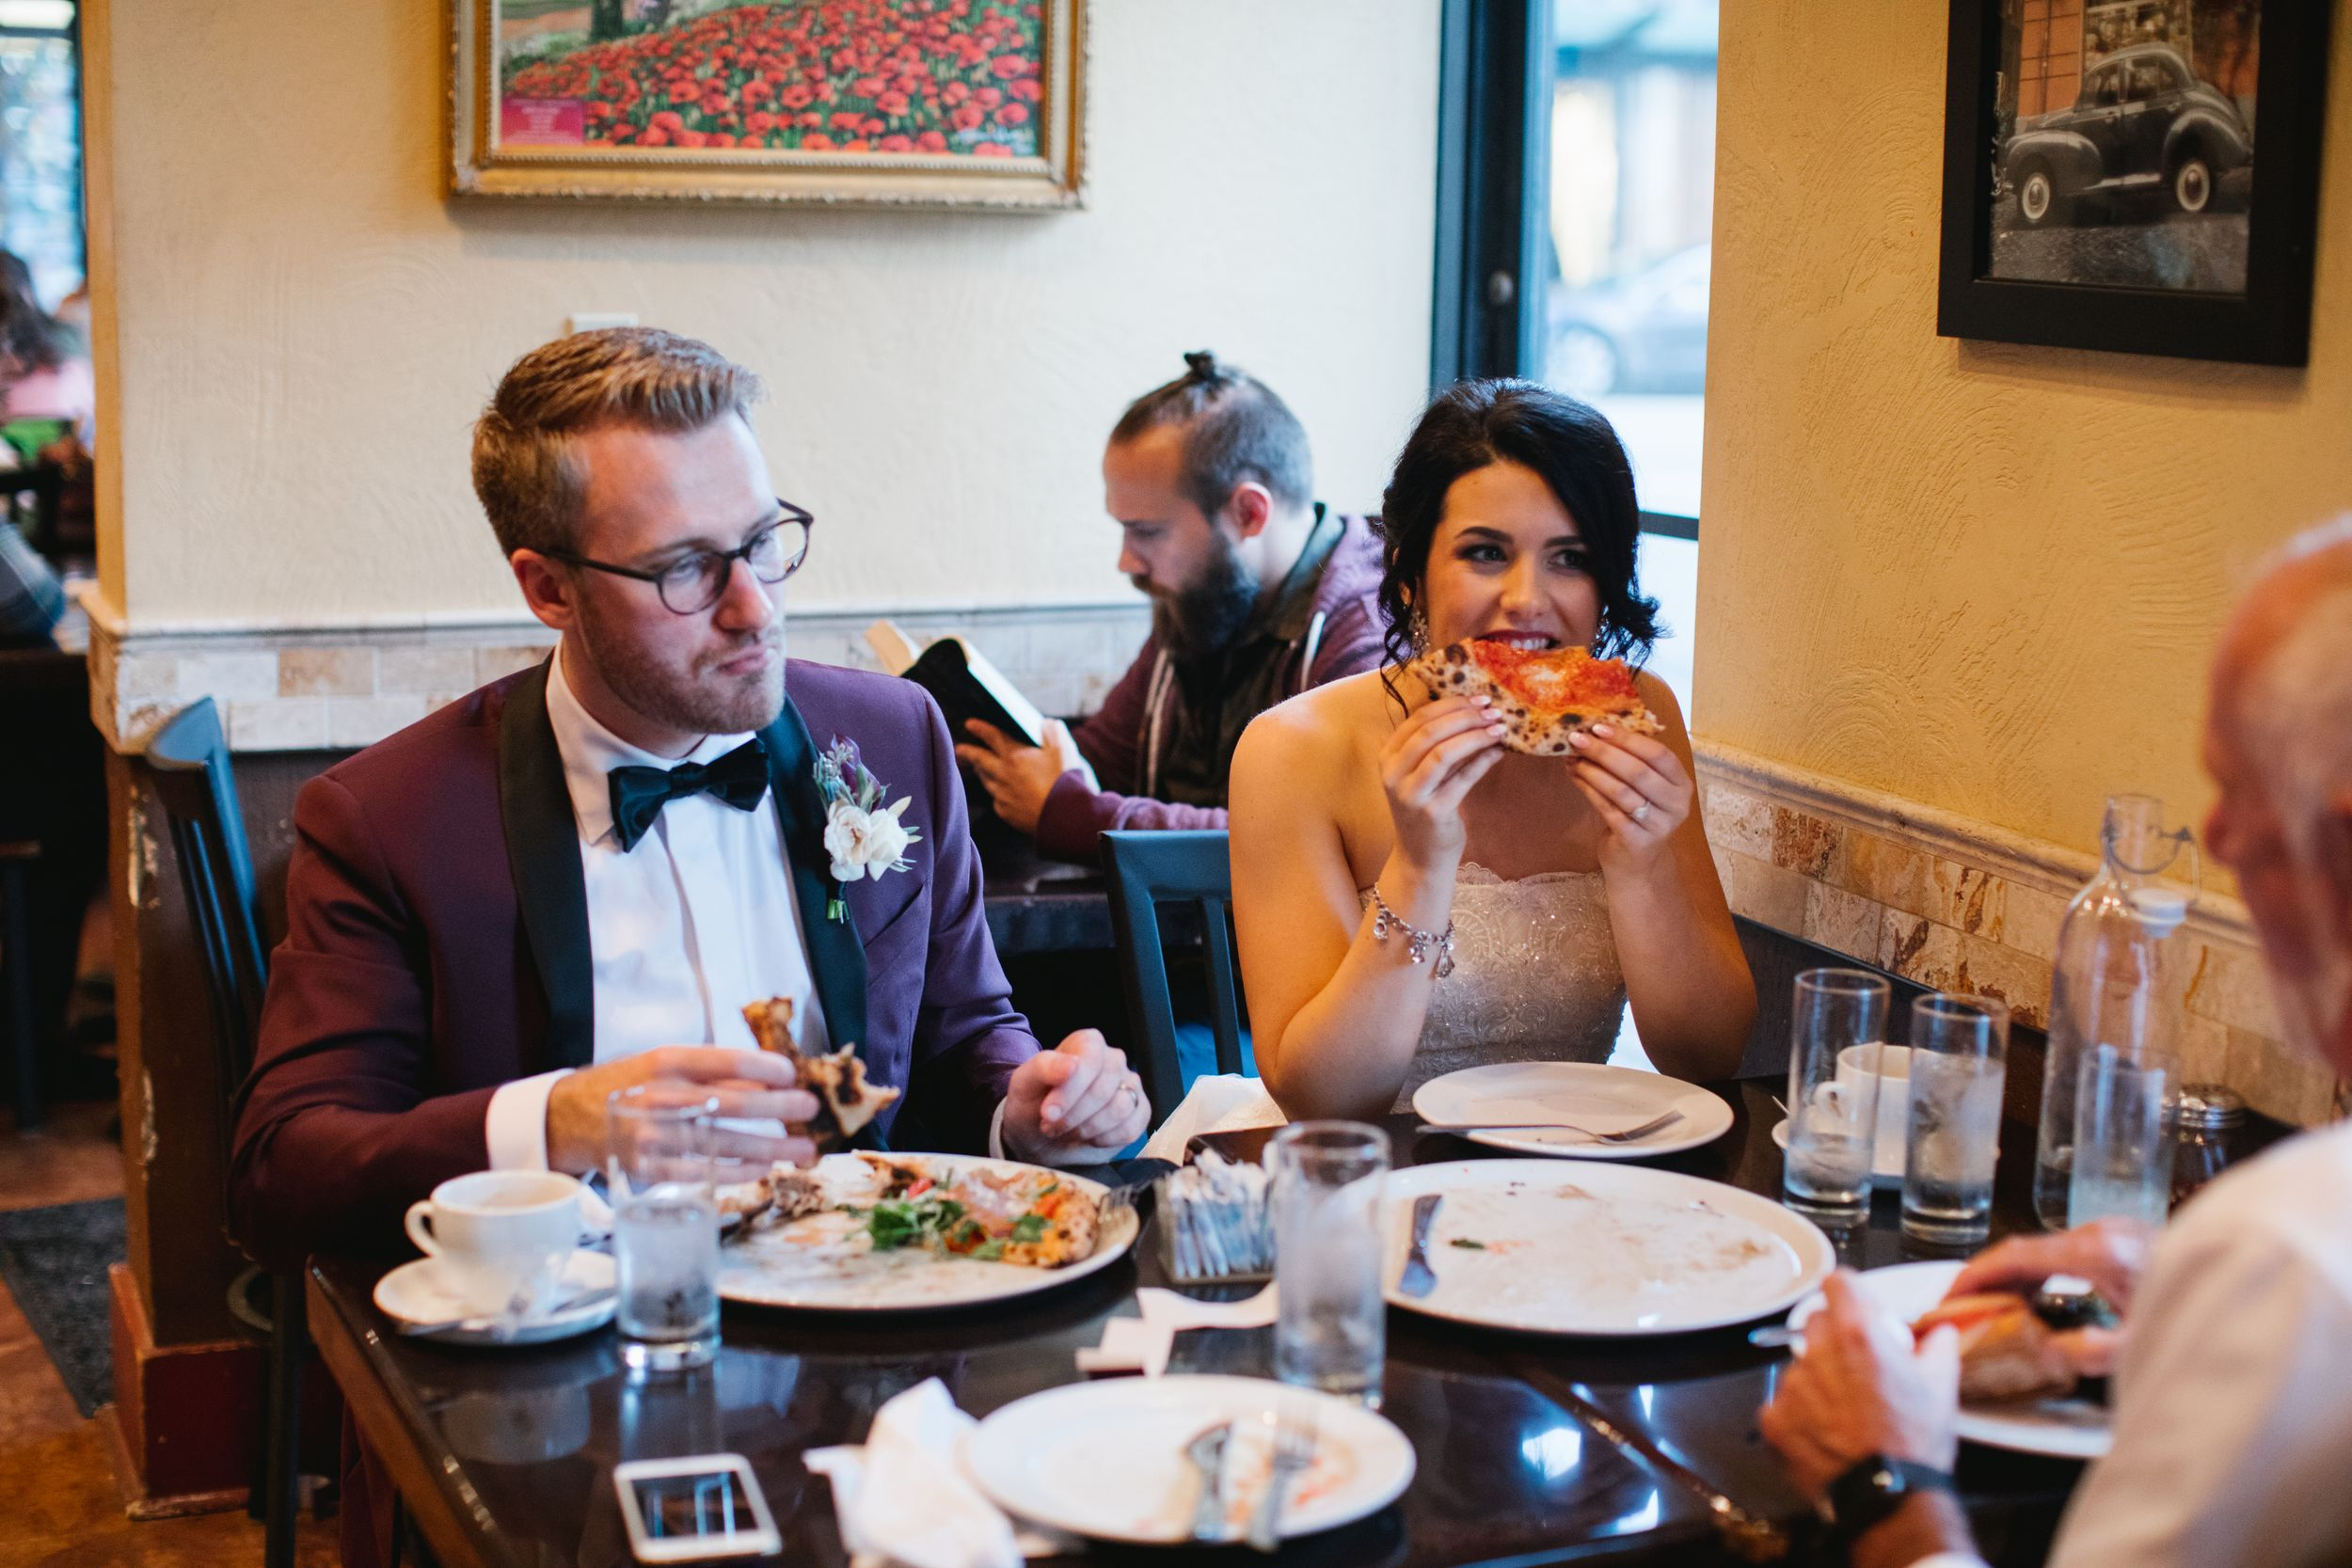 pizza wedding bride eating and laughing